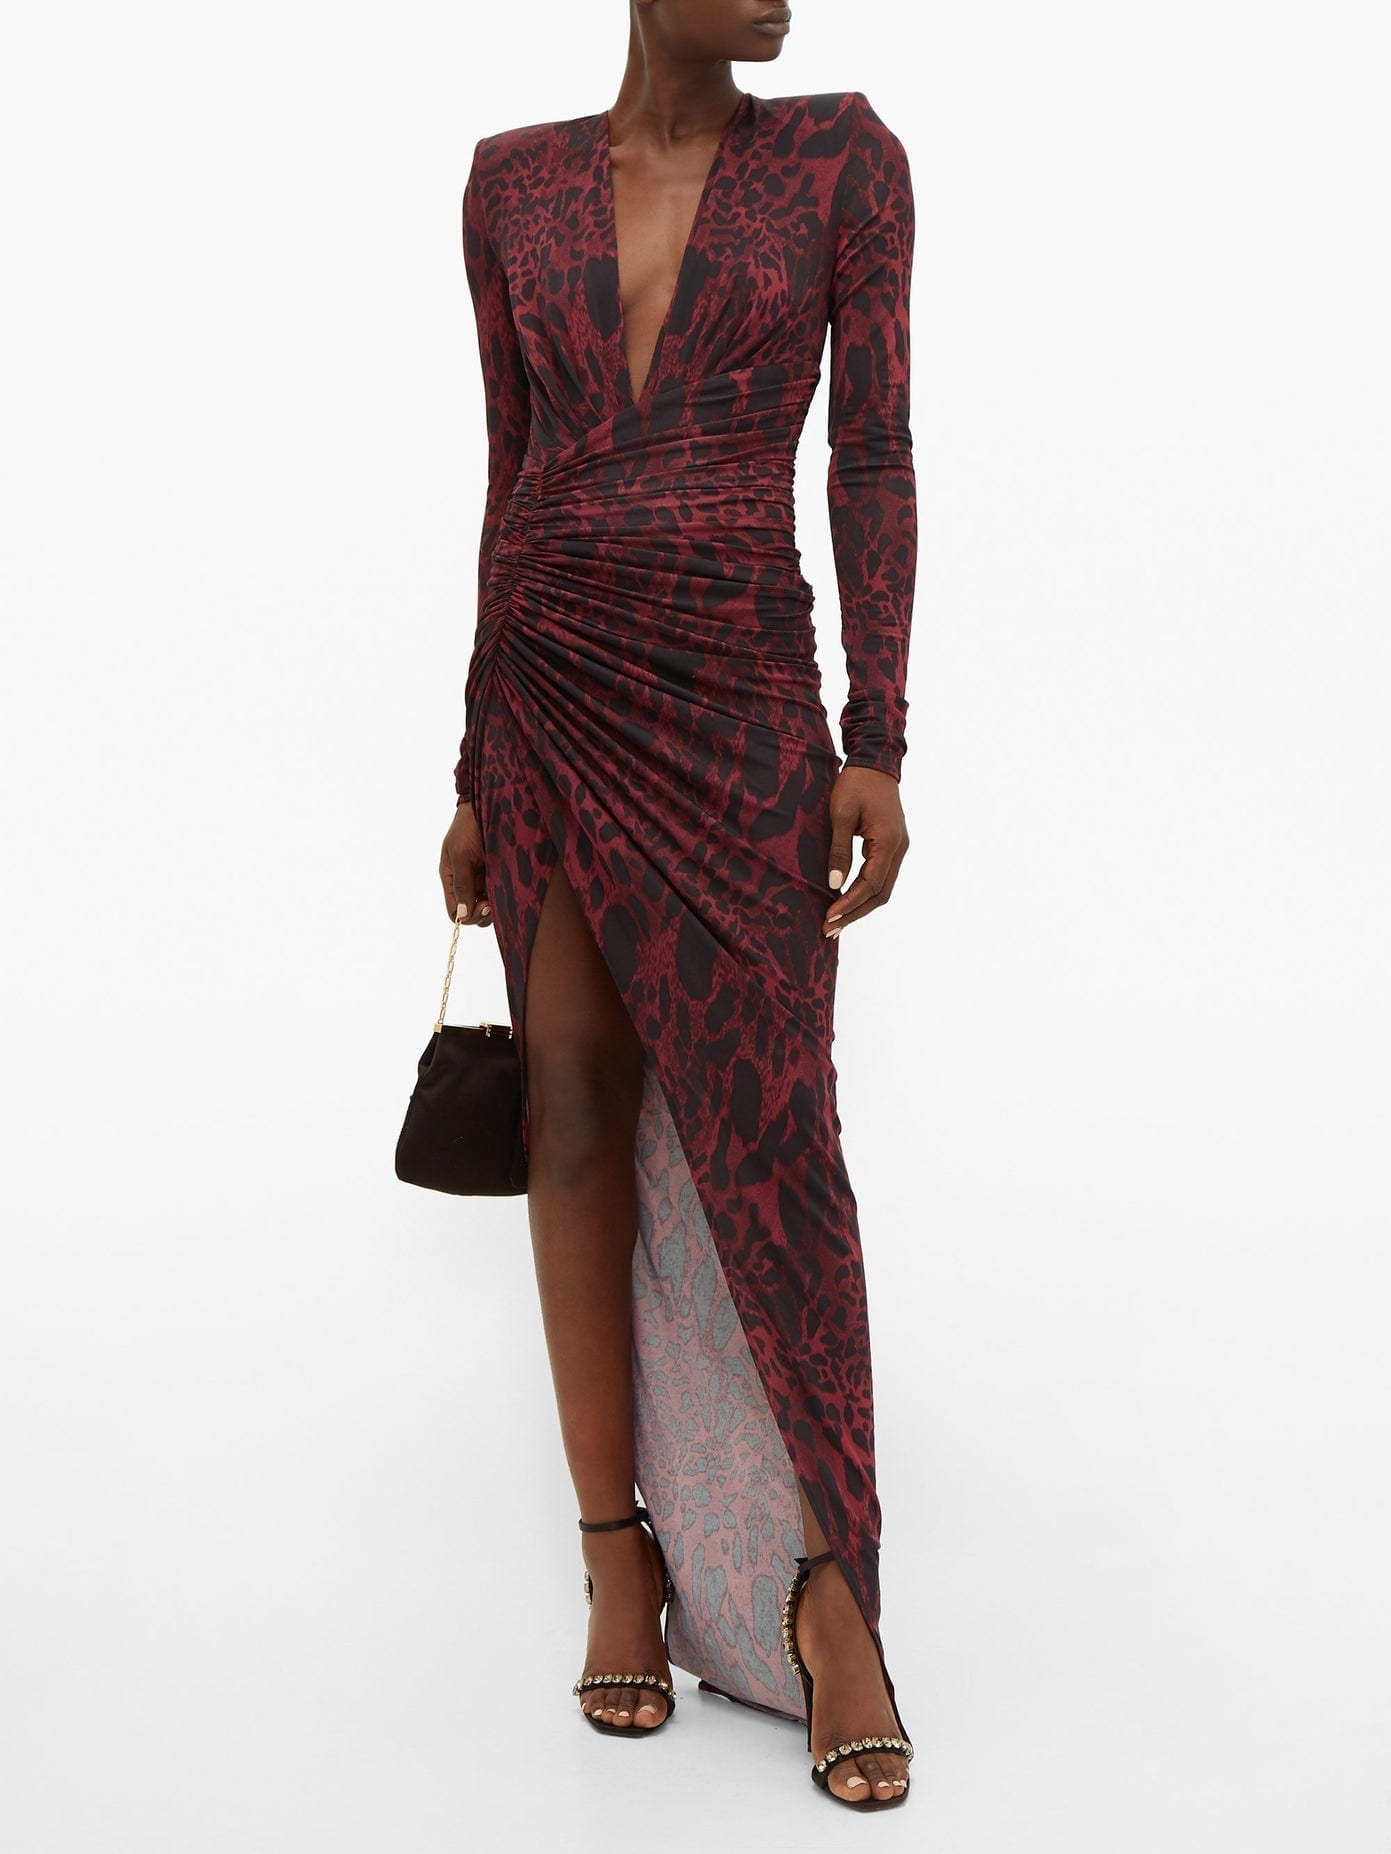 ALEXANDRE VAUTHIER Ruched Lynx-print Stretch-jersey Dress